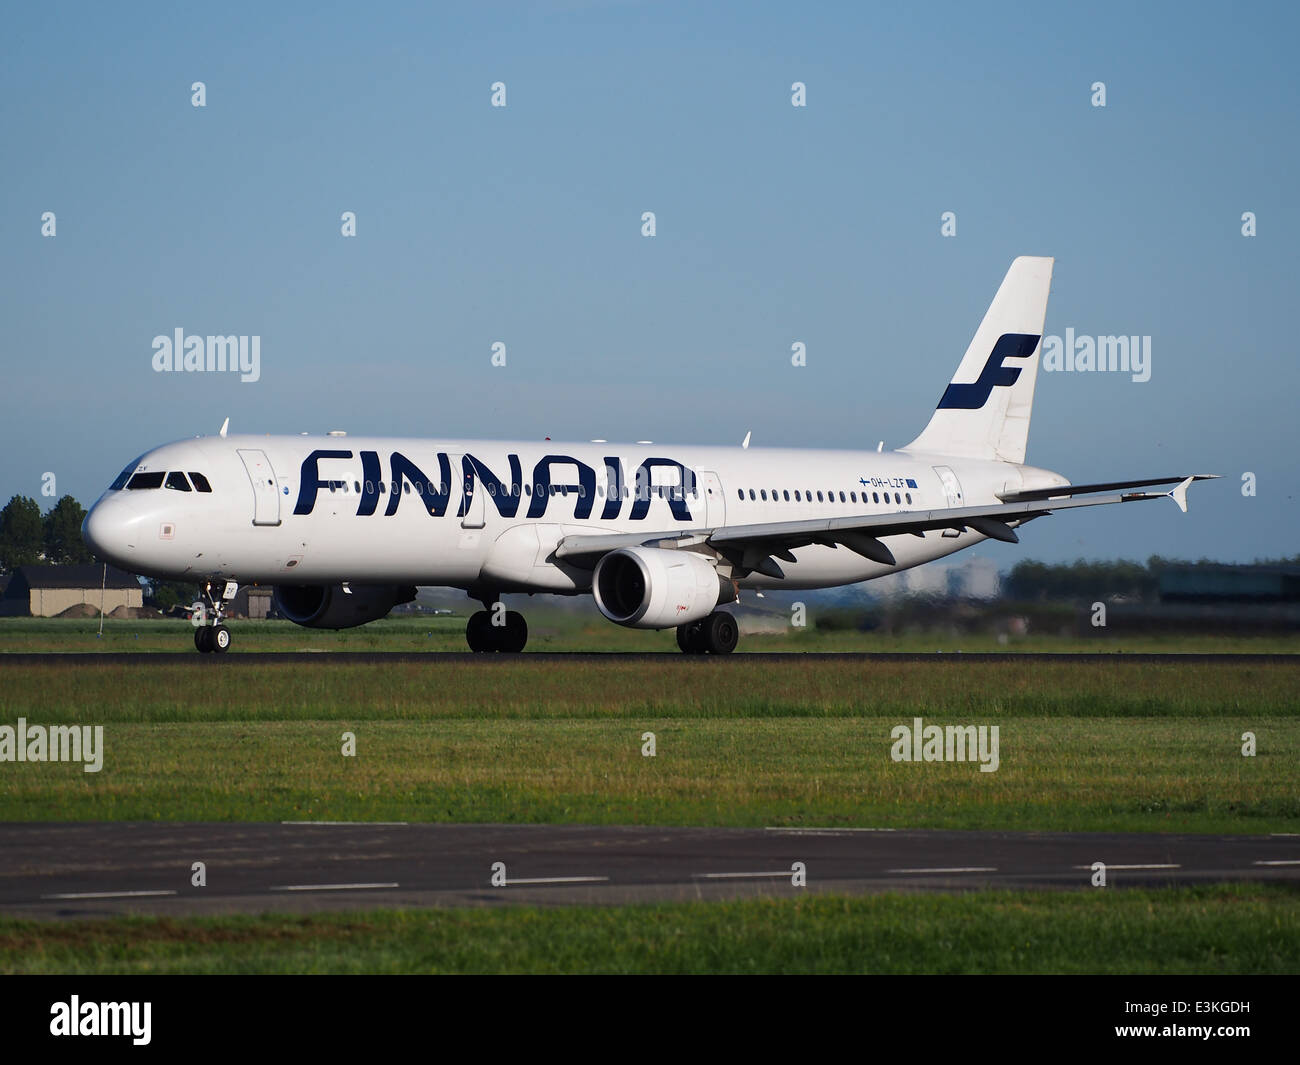 OH-LZF Finnair Airbus A321-211 takeoff from Schiphol (AMS - EHAM), The Netherlands, 11june2014, pic-1 - Stock Image